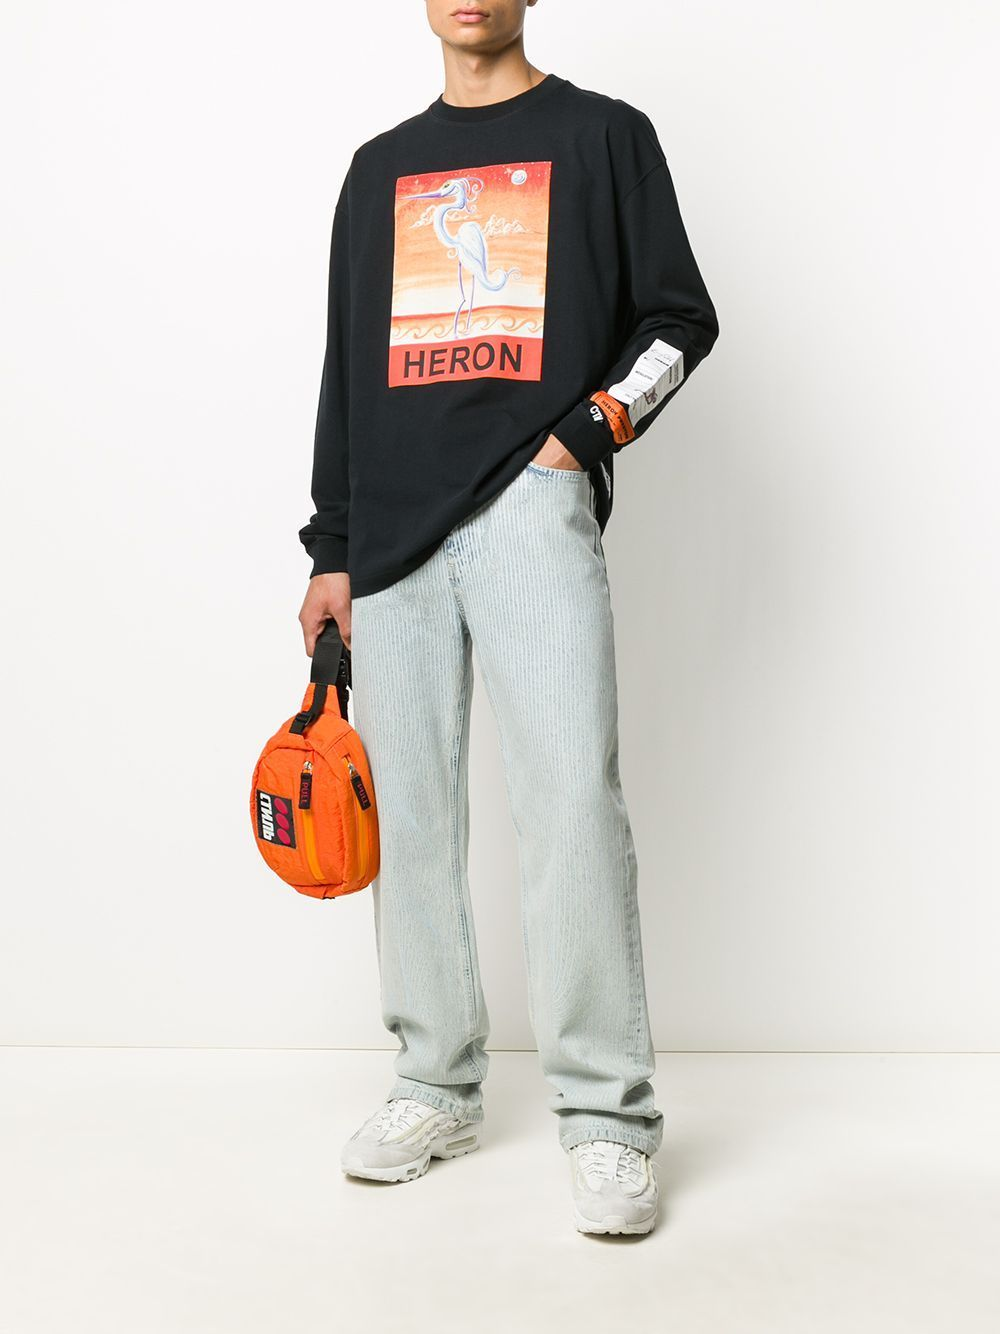 HERON PRESTON Swan Print Long Sleeve T-shirt Black - Maison De Fashion